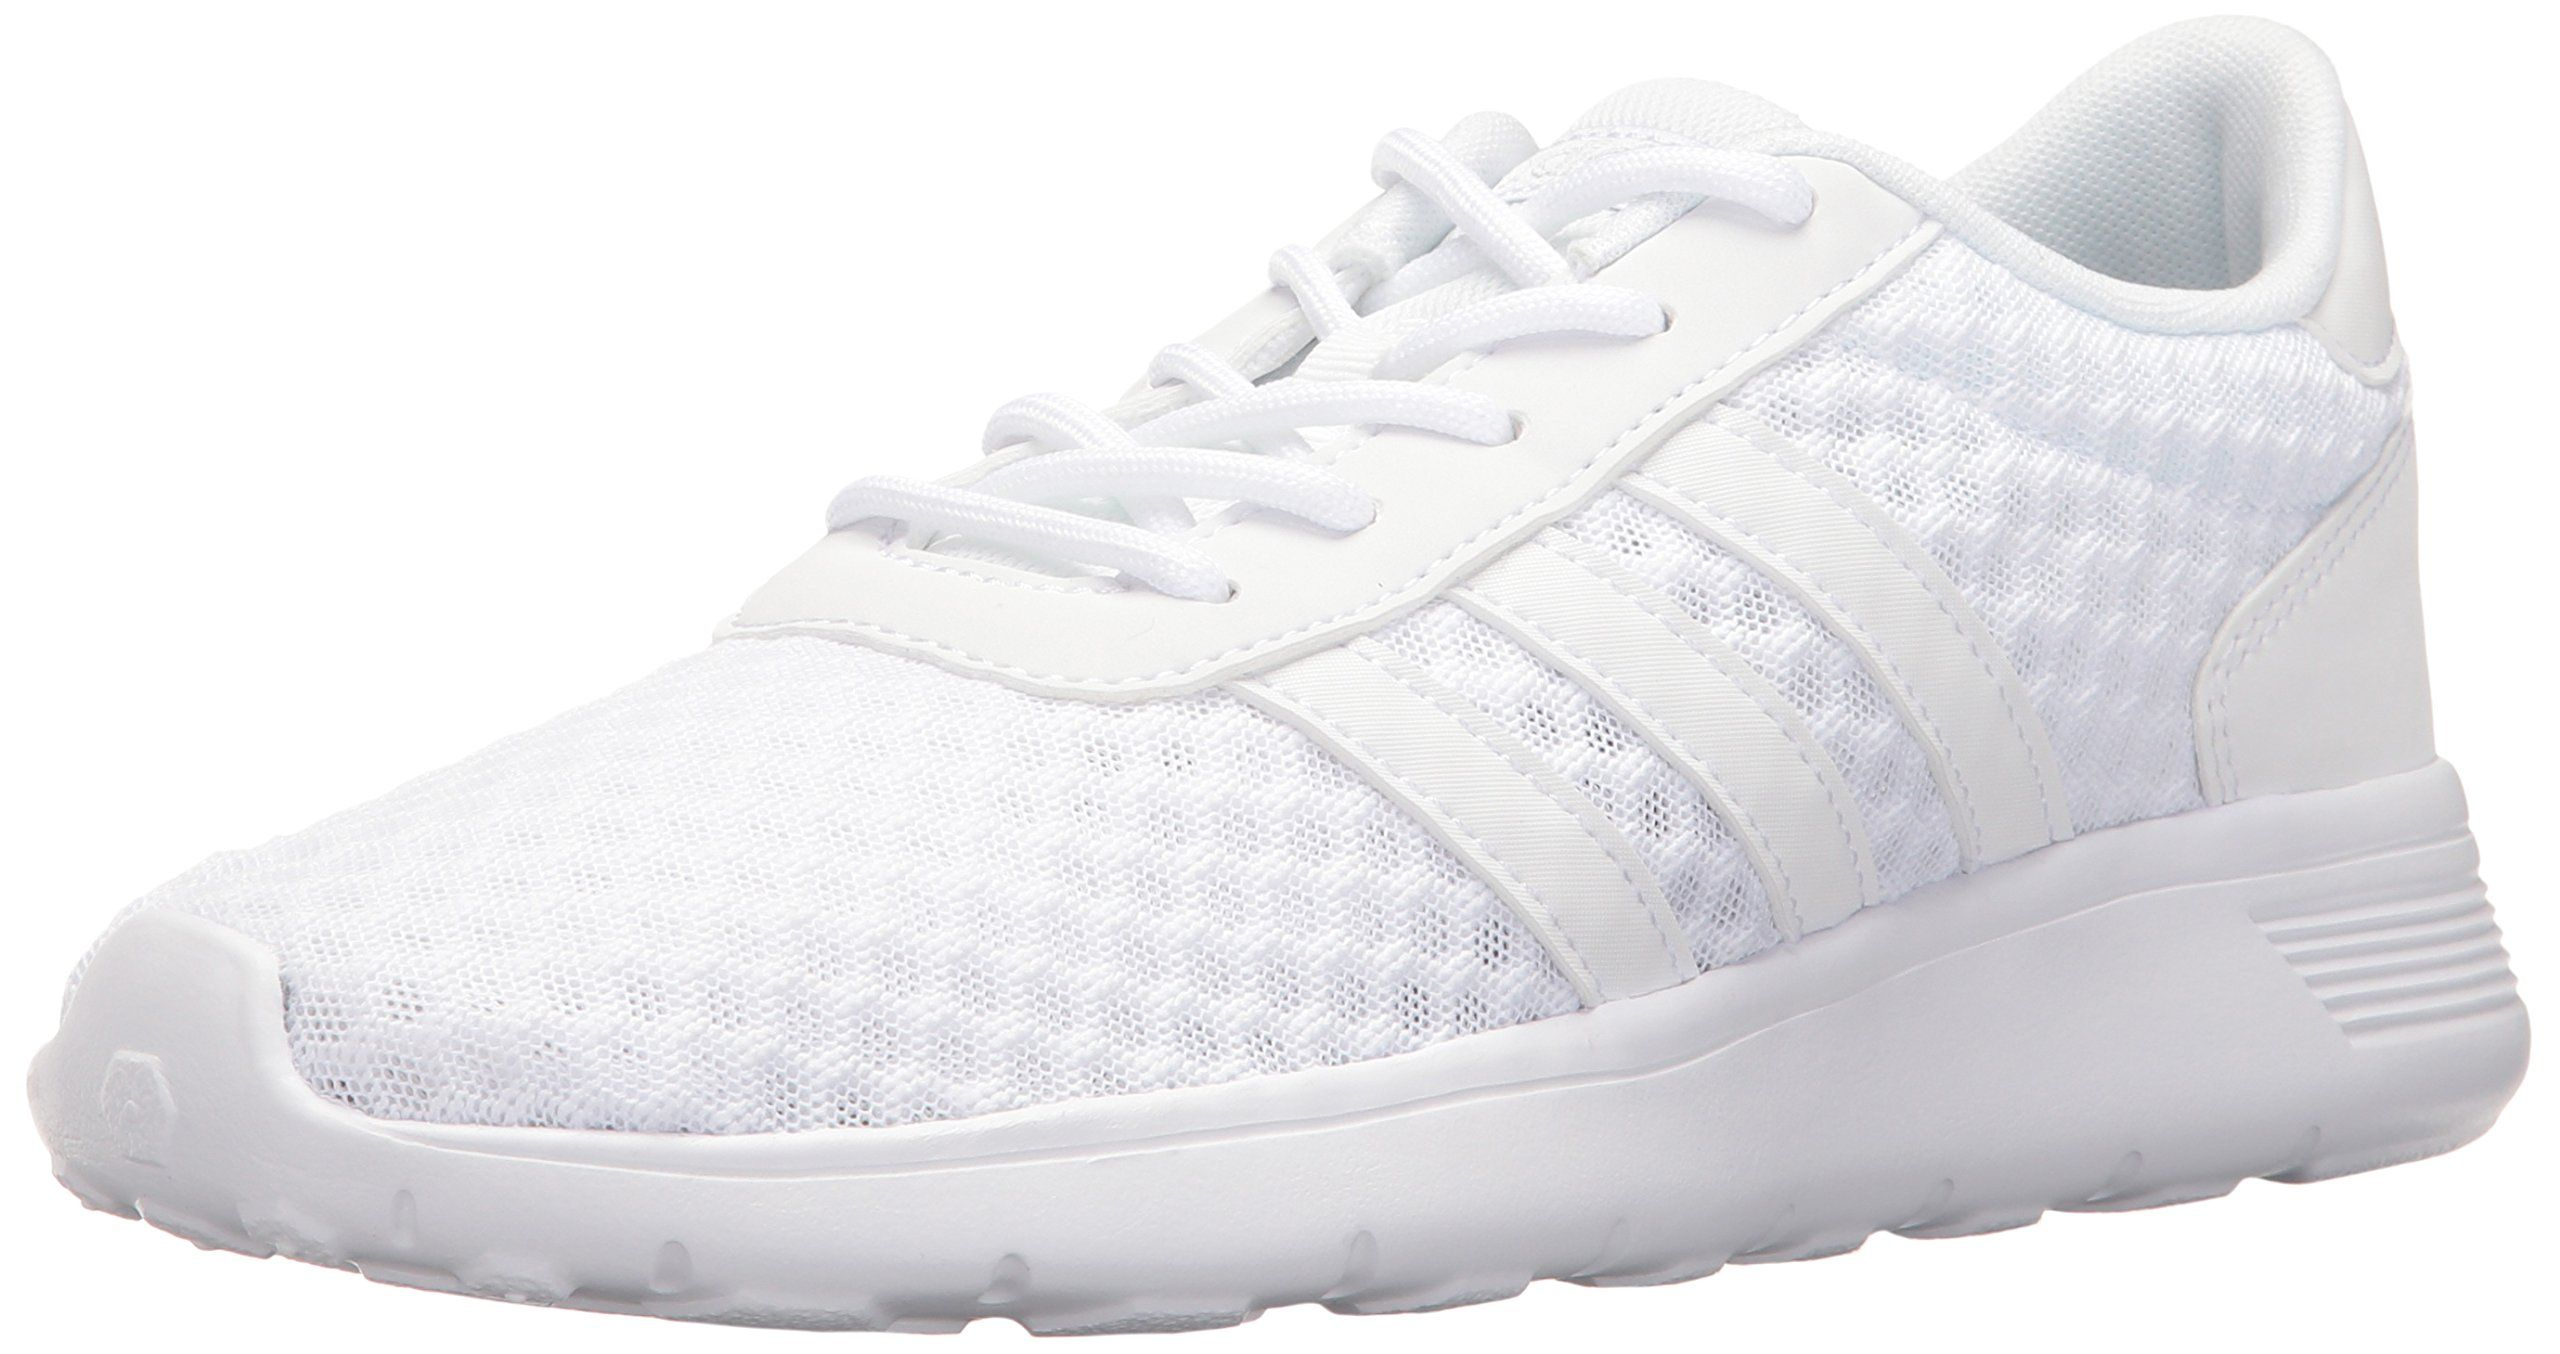 the best attitude 7066f eba48 adidas NEO Women s Lite Racer W Sneaker, White White Matte Silver, 8 M US.  Mesh upper offers breathability and a honeycomb look. Synthetic leather  3-Stripes ...